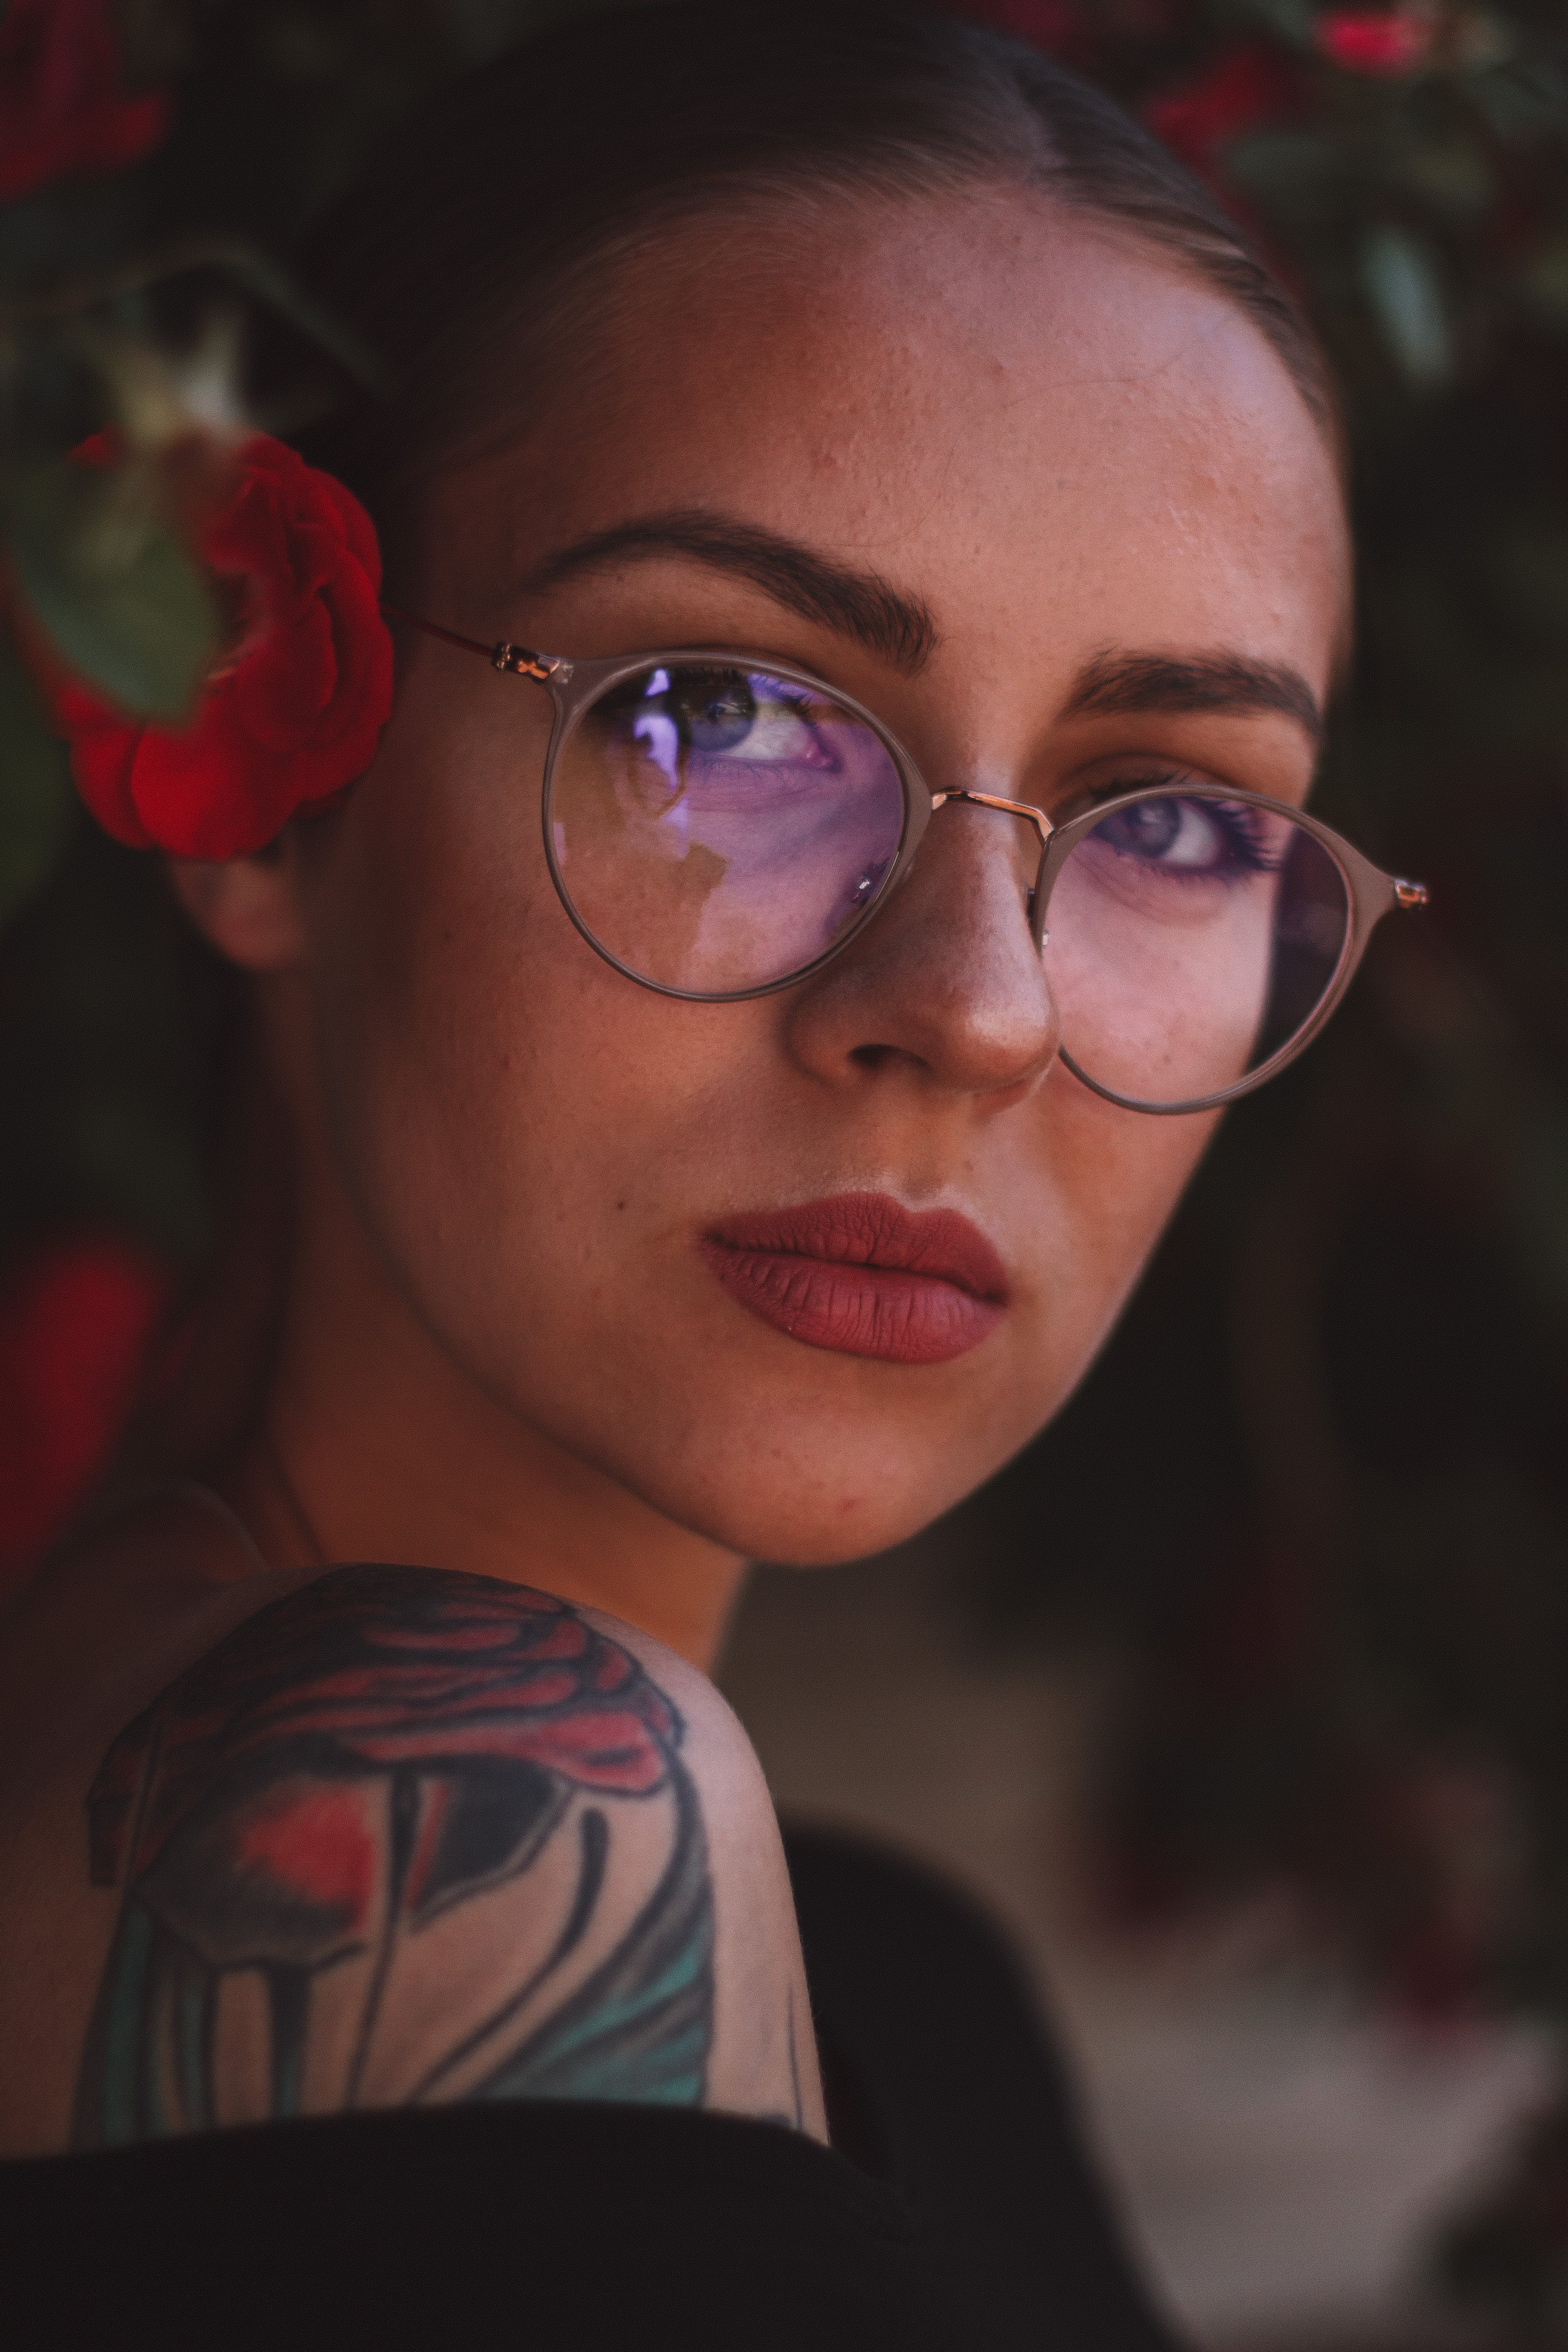 Close-Up Photo of Woman Wearing Eyeglasses